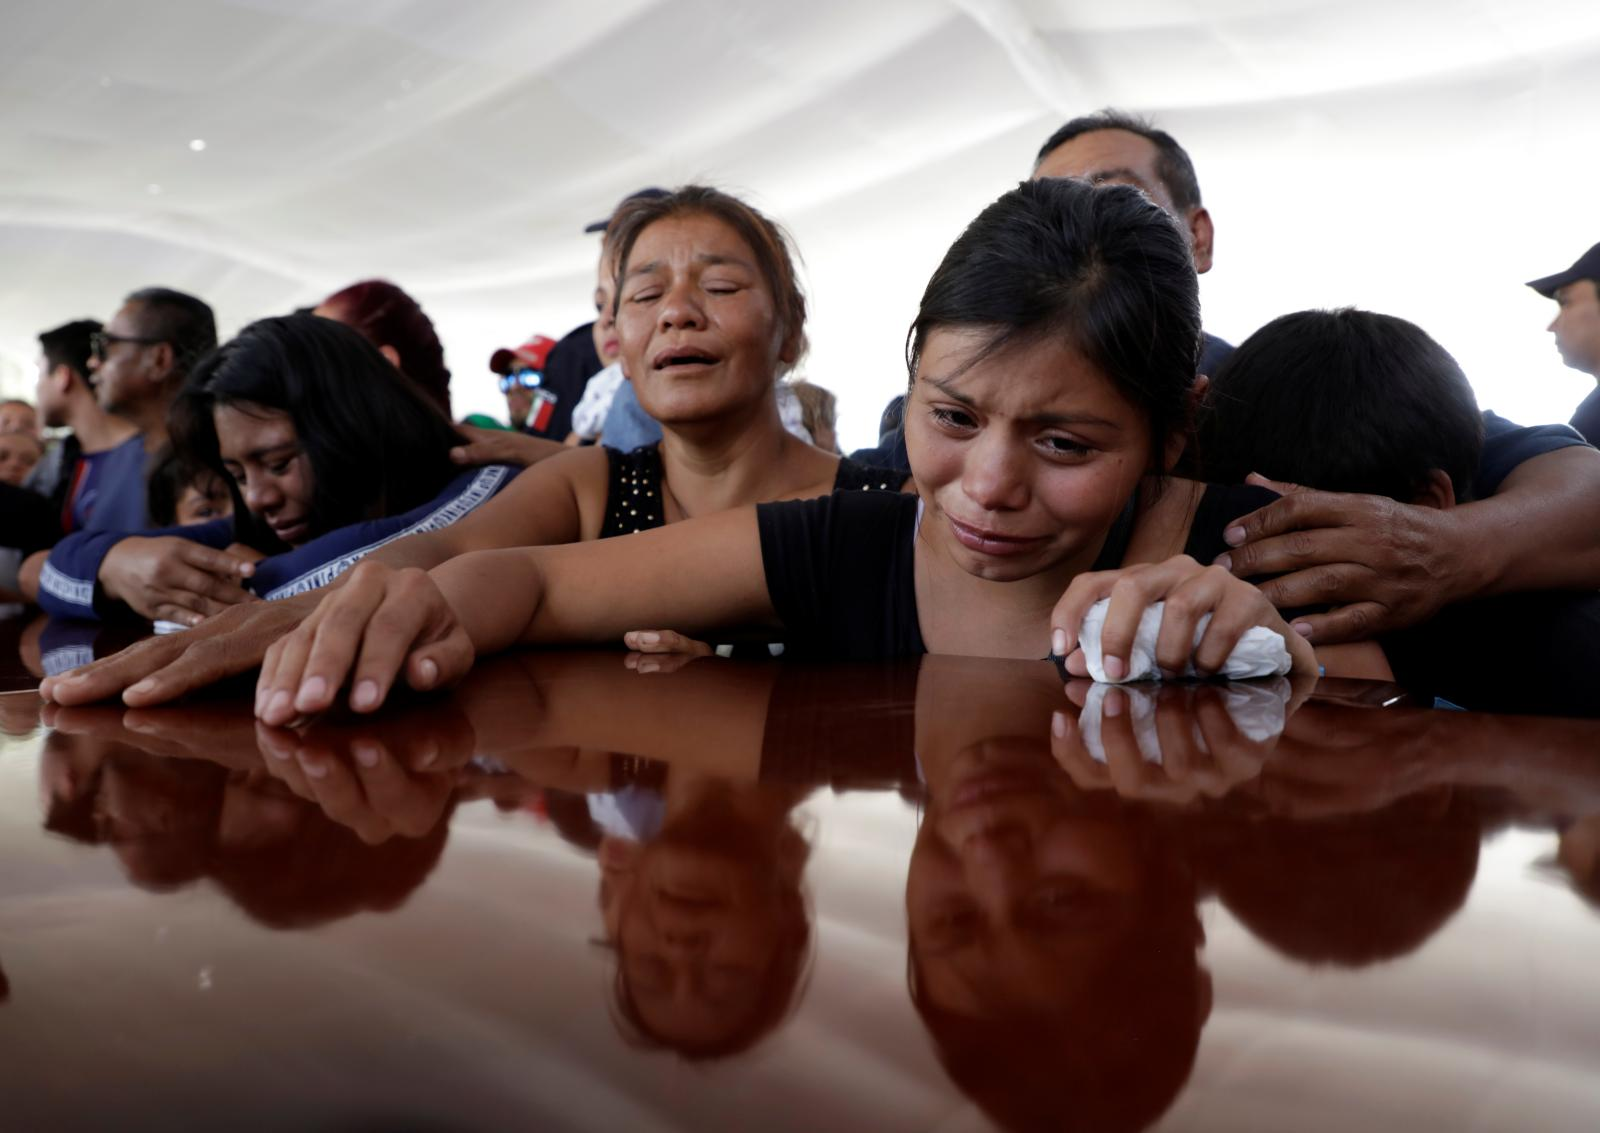 Relatives of a police officer, who was killed along with other fellow police officers during an ambush by suspected cartel hitmen, react during an homage organised by the state government, in Morelia, in Michoacan state, Mexico October 15, 2019. REUTERS/Alan Ortega